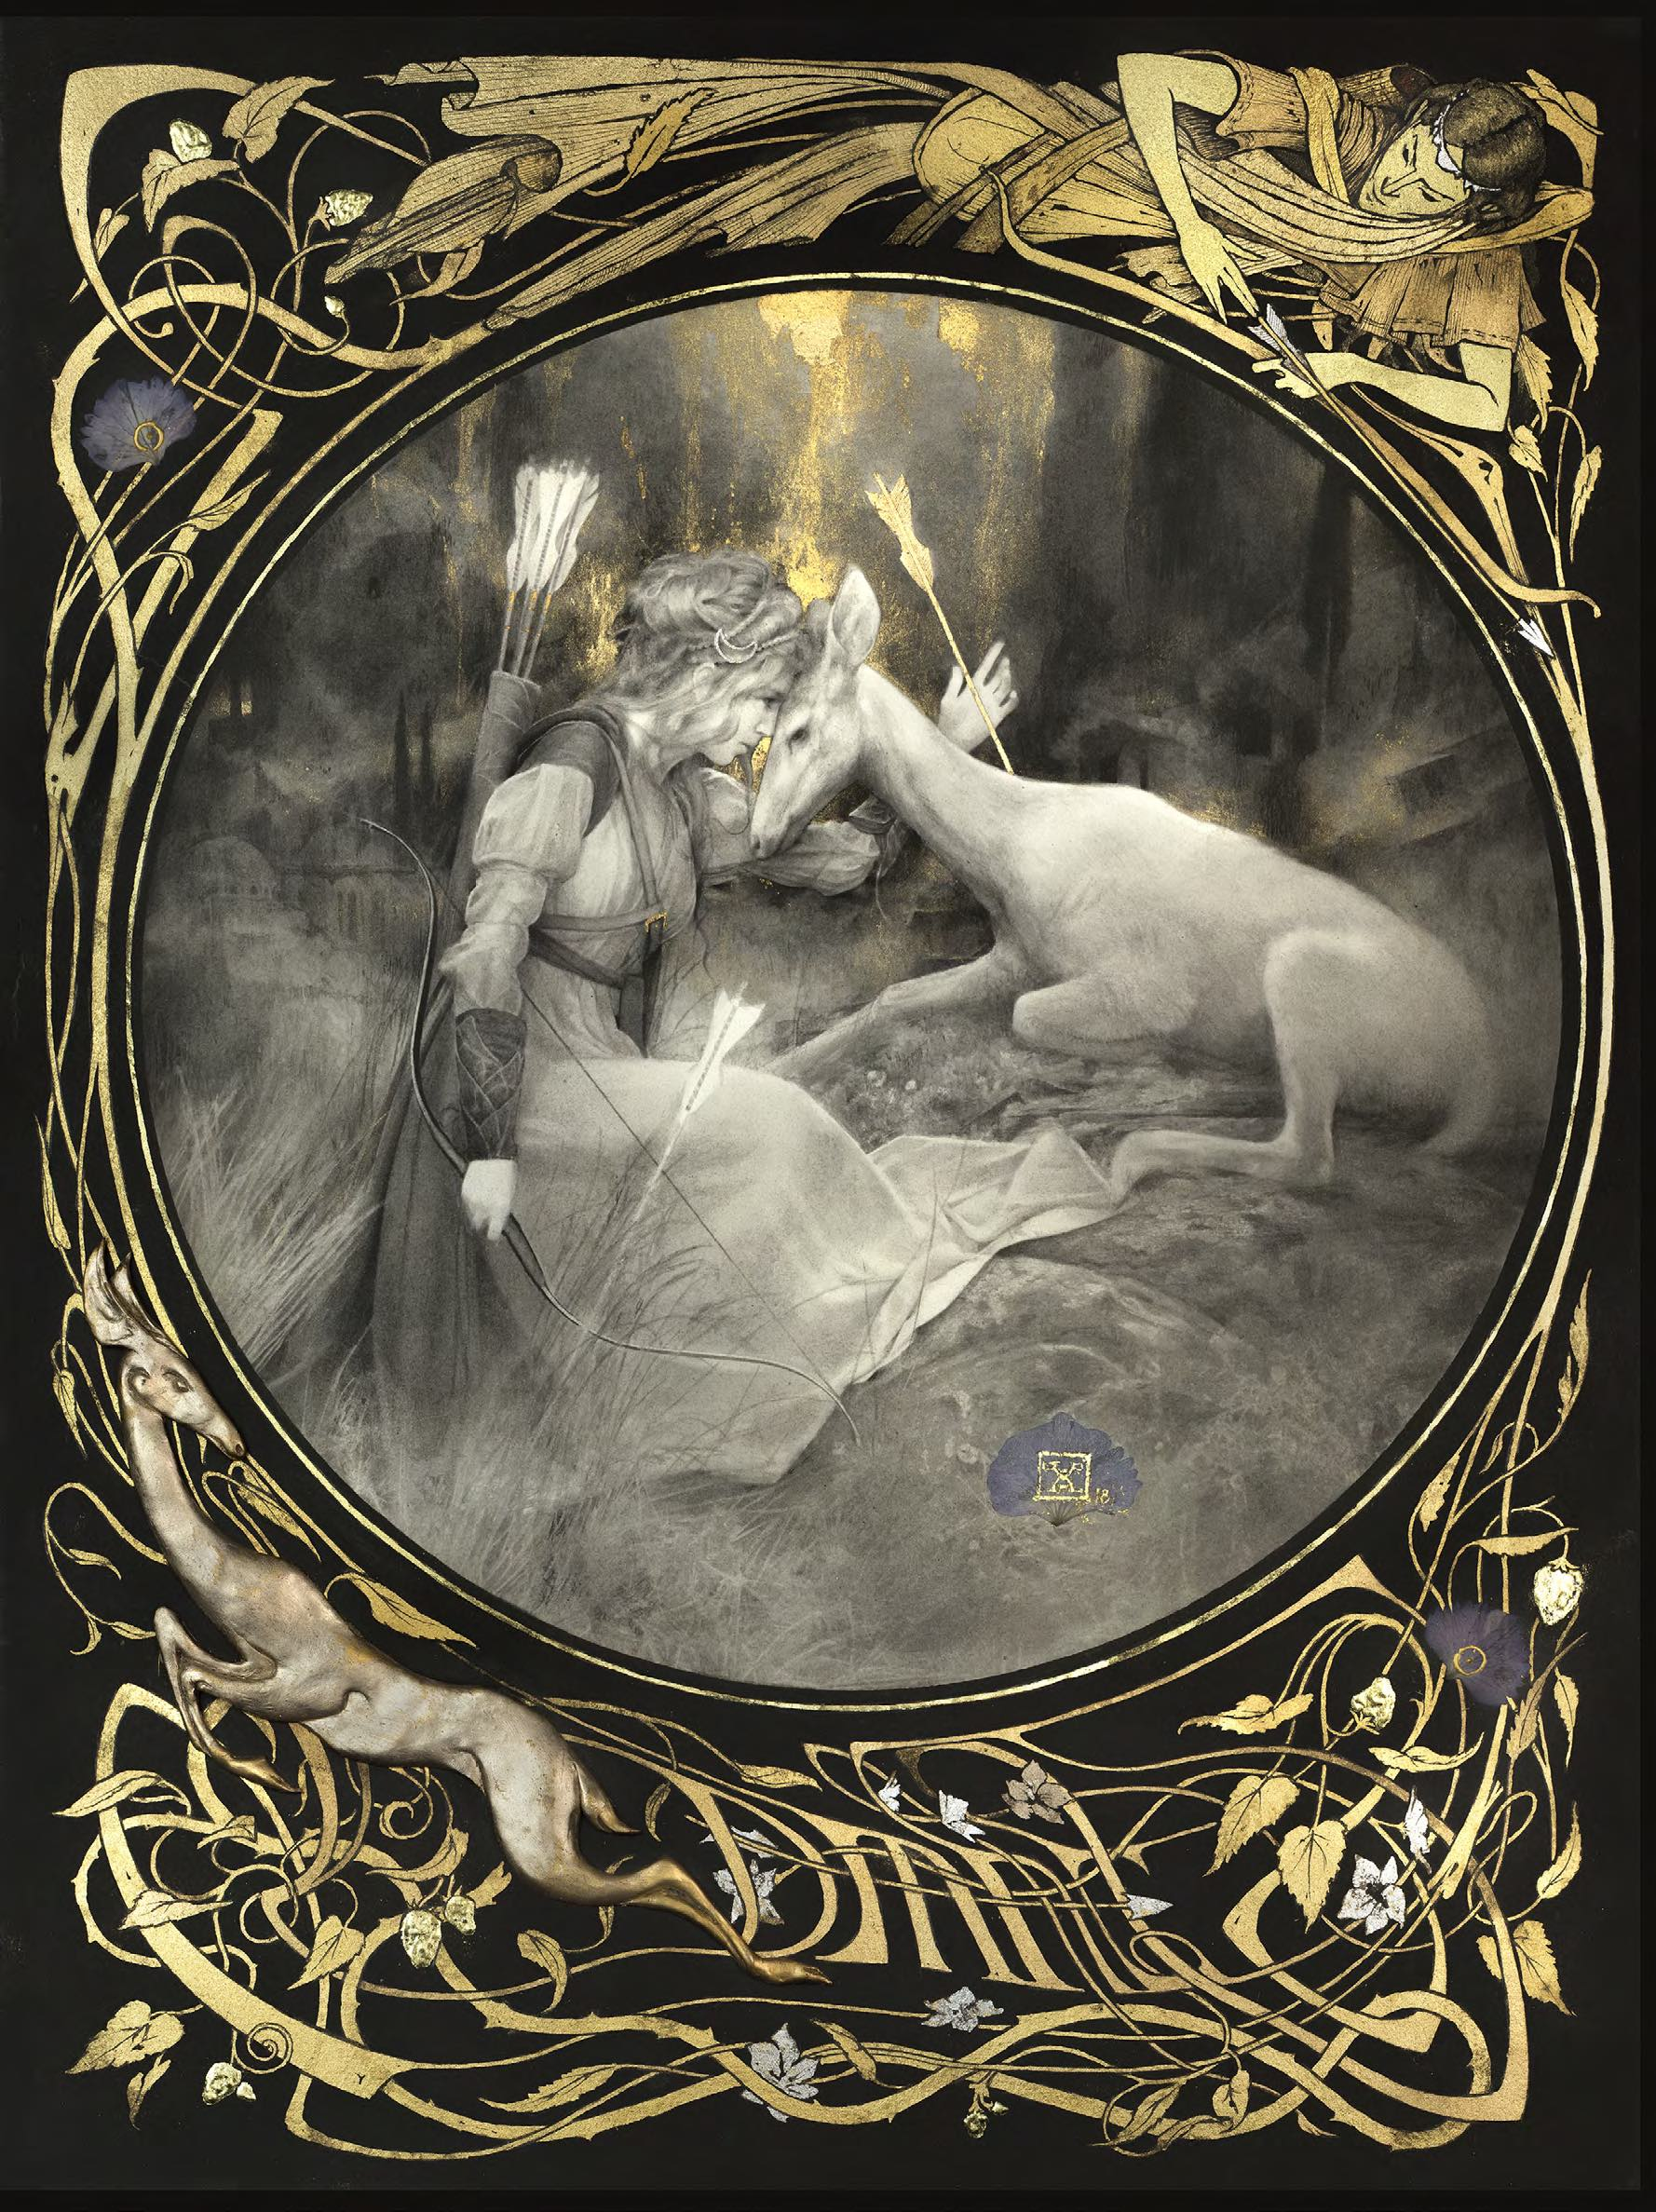 Aesthetic Harmony- The Art of Yoann Lossel and Psyché Ophiuchus Enchanted Living Magazine